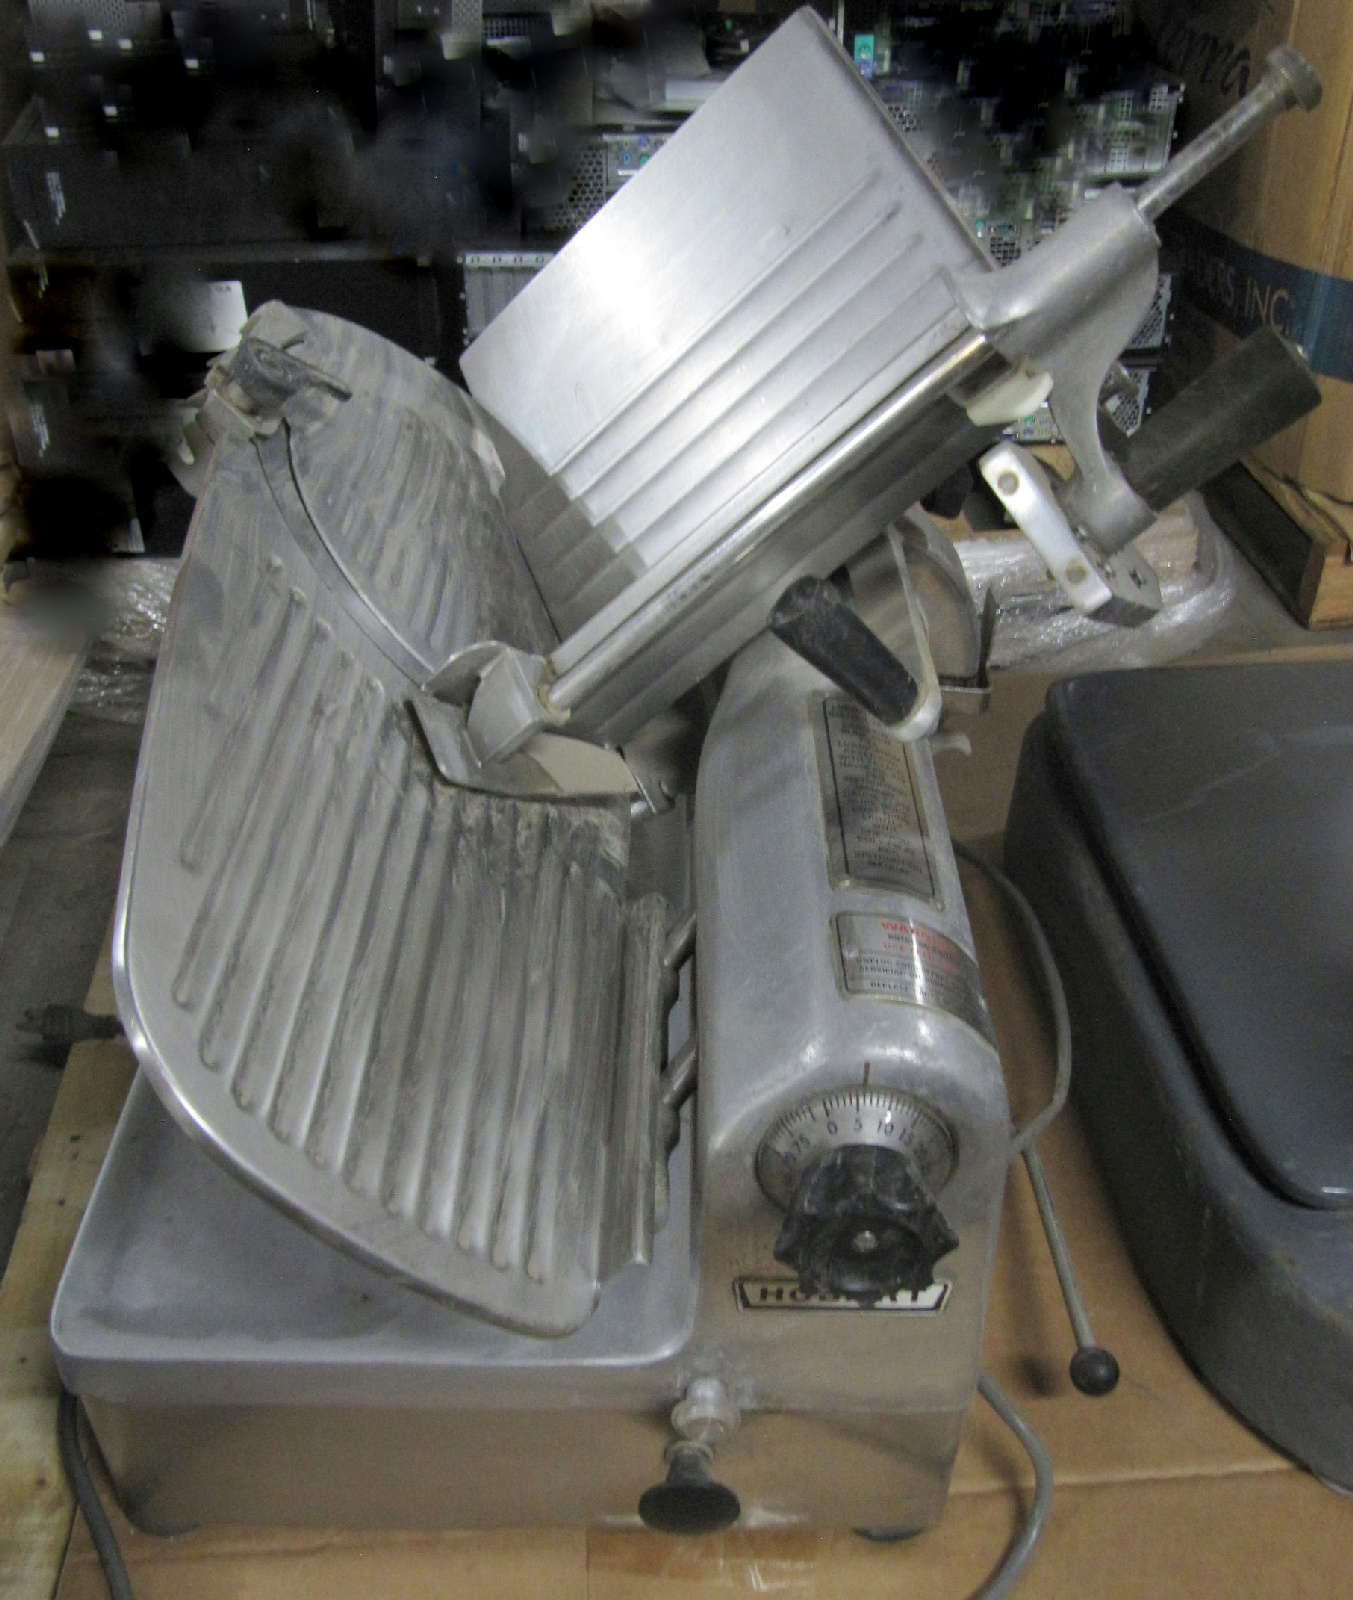 functions of hobart meat slicer Our hobart meat slicer replacement parts list keeps getting longer and longer   the hobart 1612,1712 meat slicer and will have the 1812,1912 parts on the web   features such as a front-mounted meat grip and removable stone sharpener.